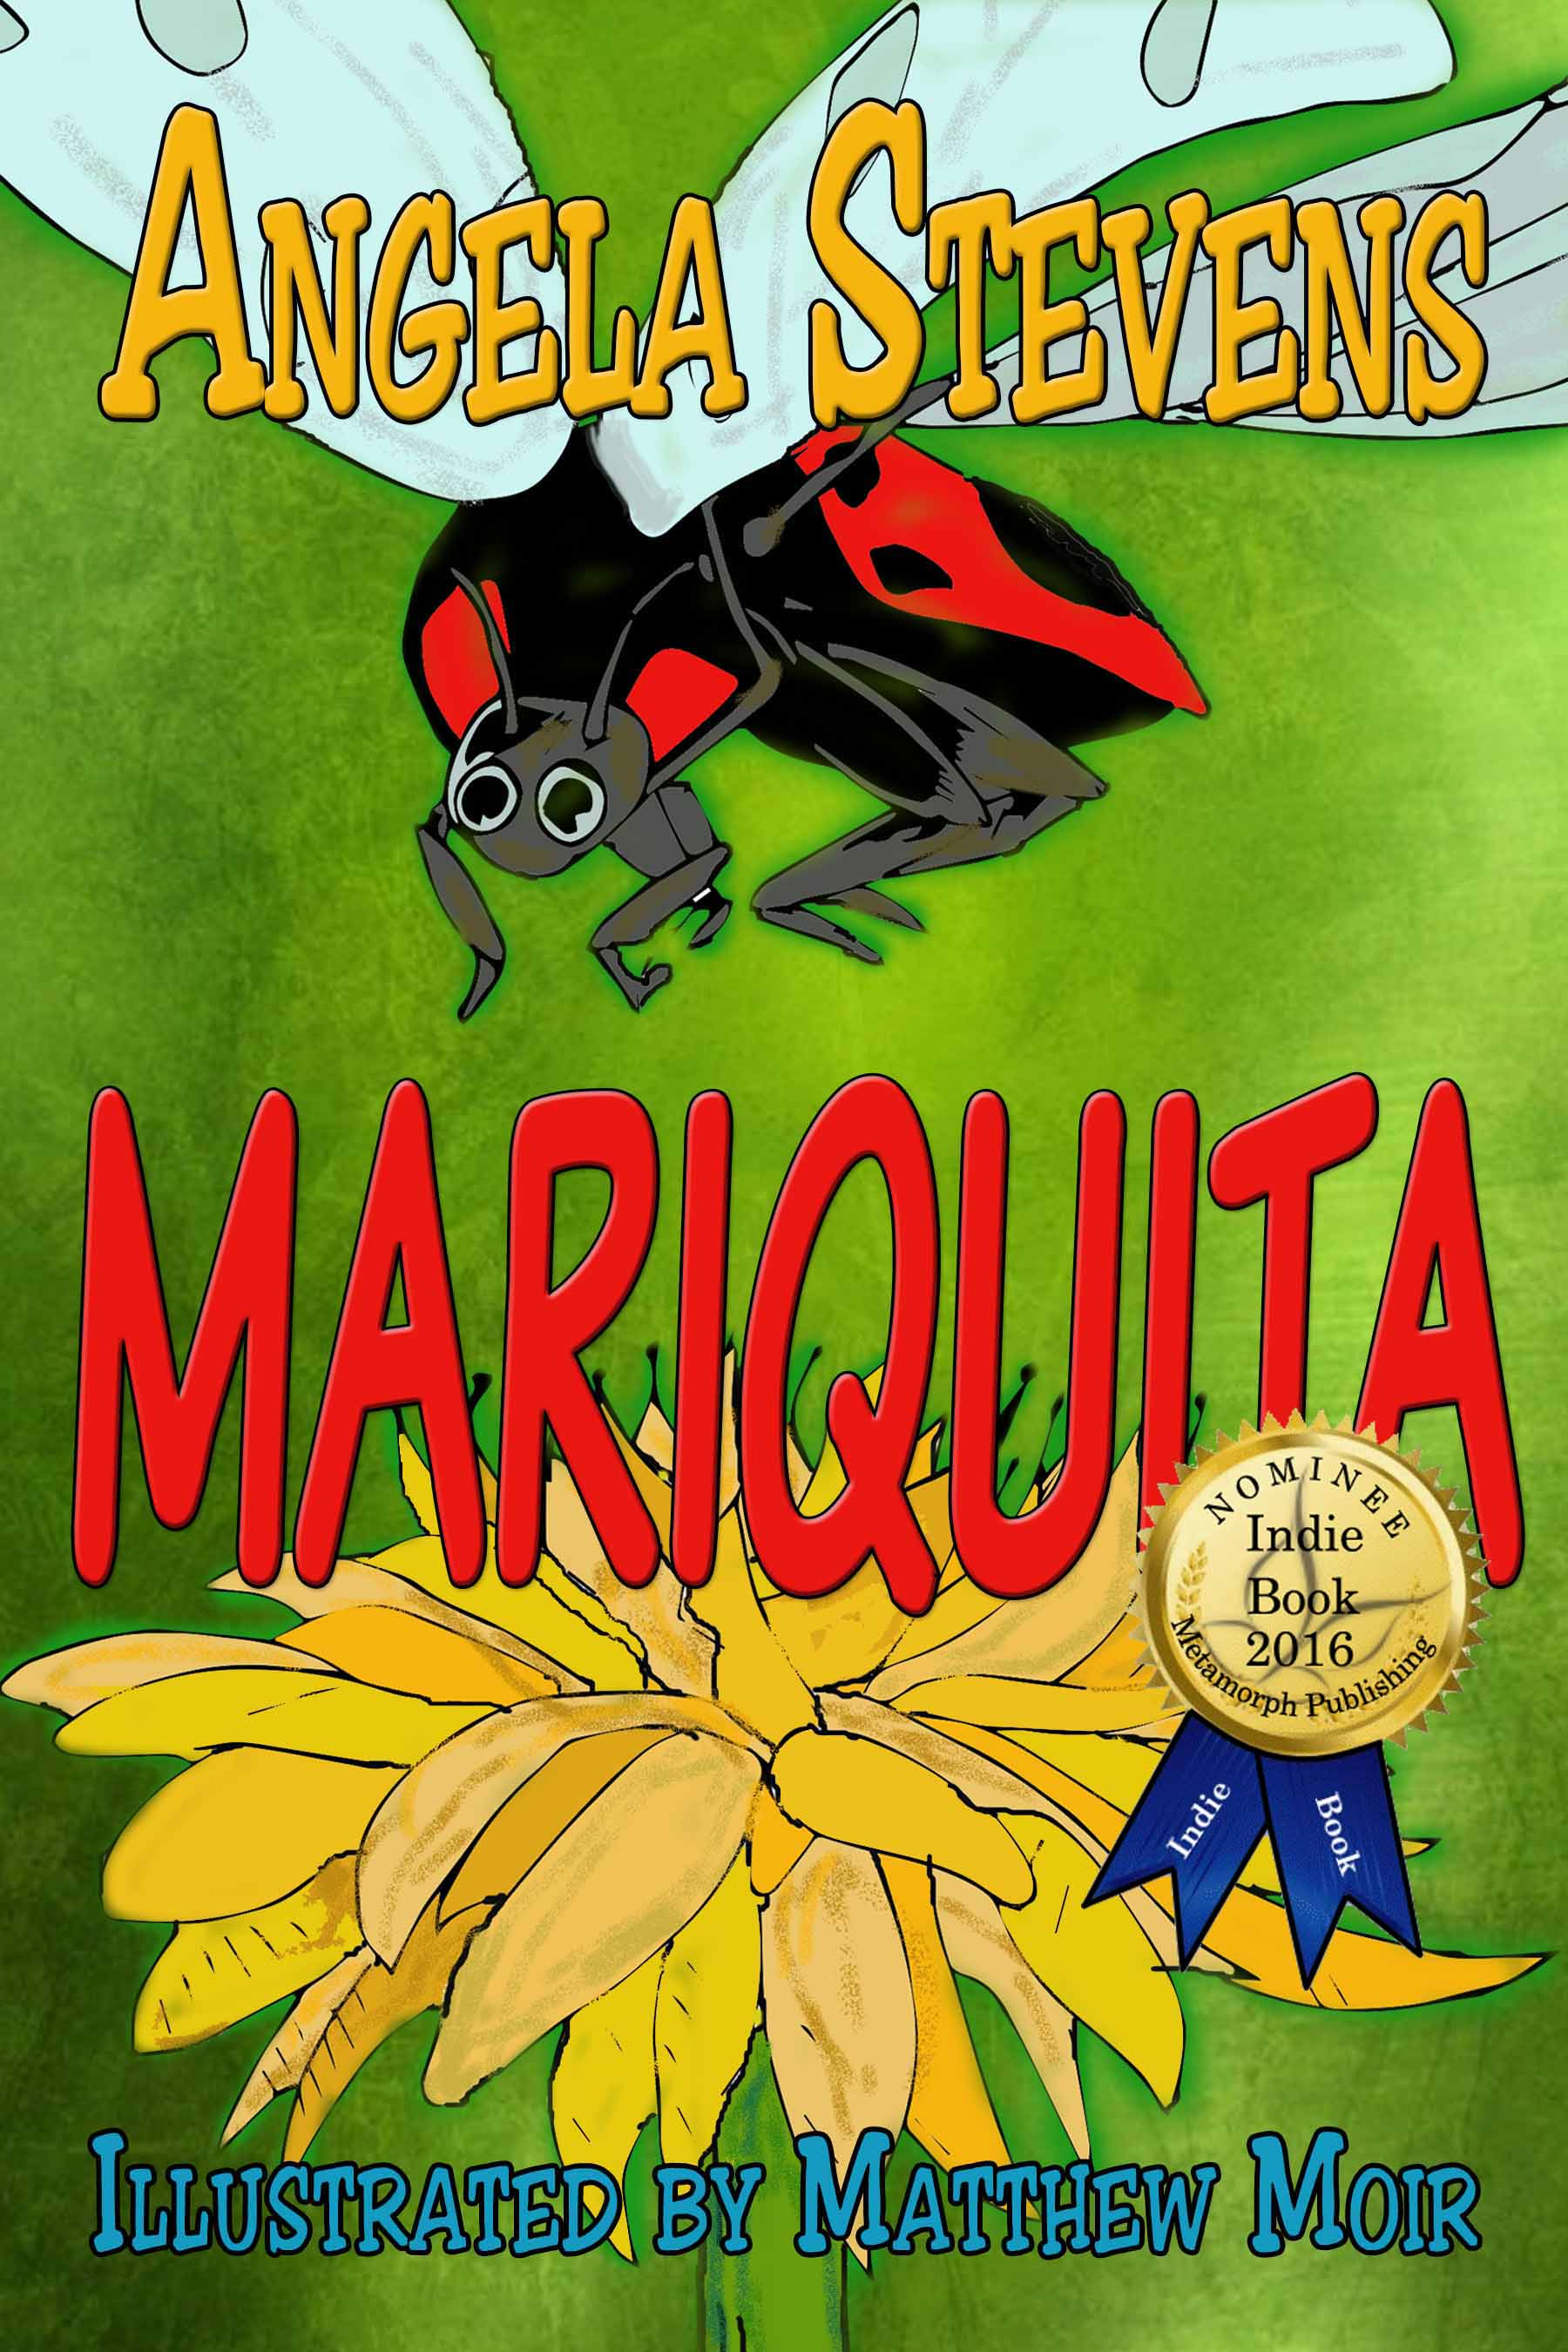 This gorgeous cover uses one of Matthew Moir's drawings, colored by Angela Stevens.